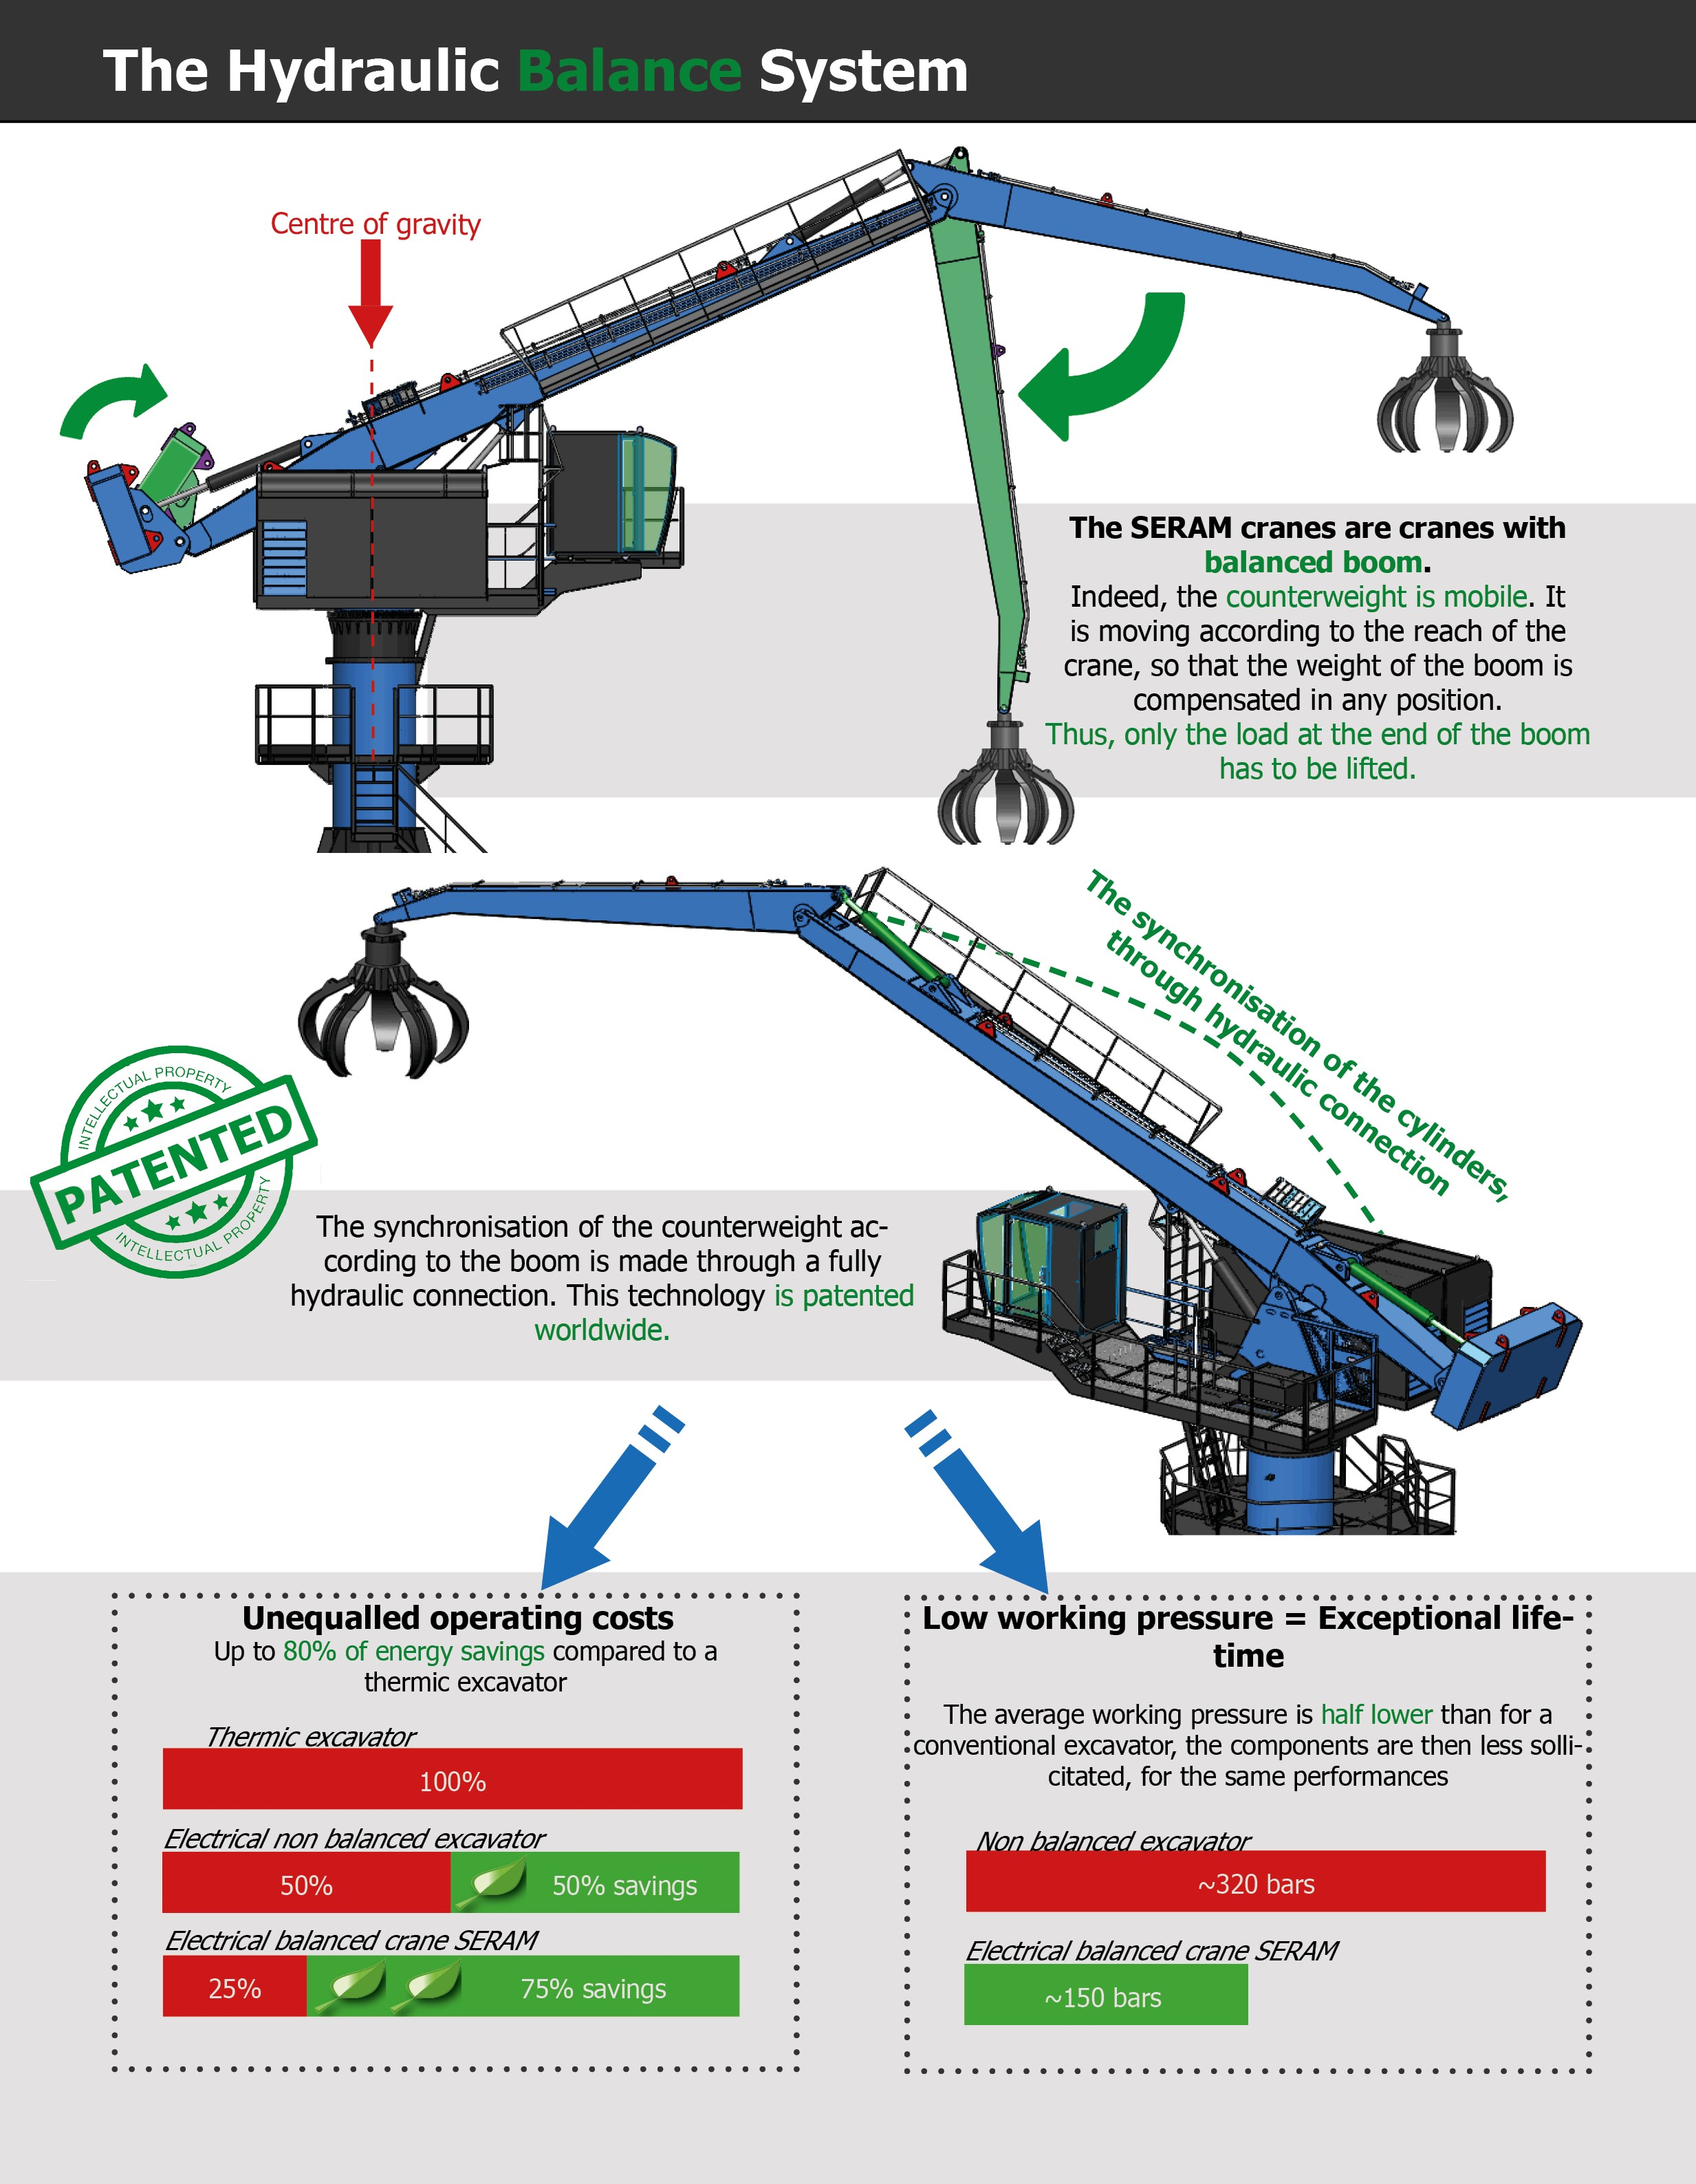 SERAM hydraulic balancing - The easy and efficient solution - The SERAM crane is the only balanced crane by hydraulic system - No mechanical link